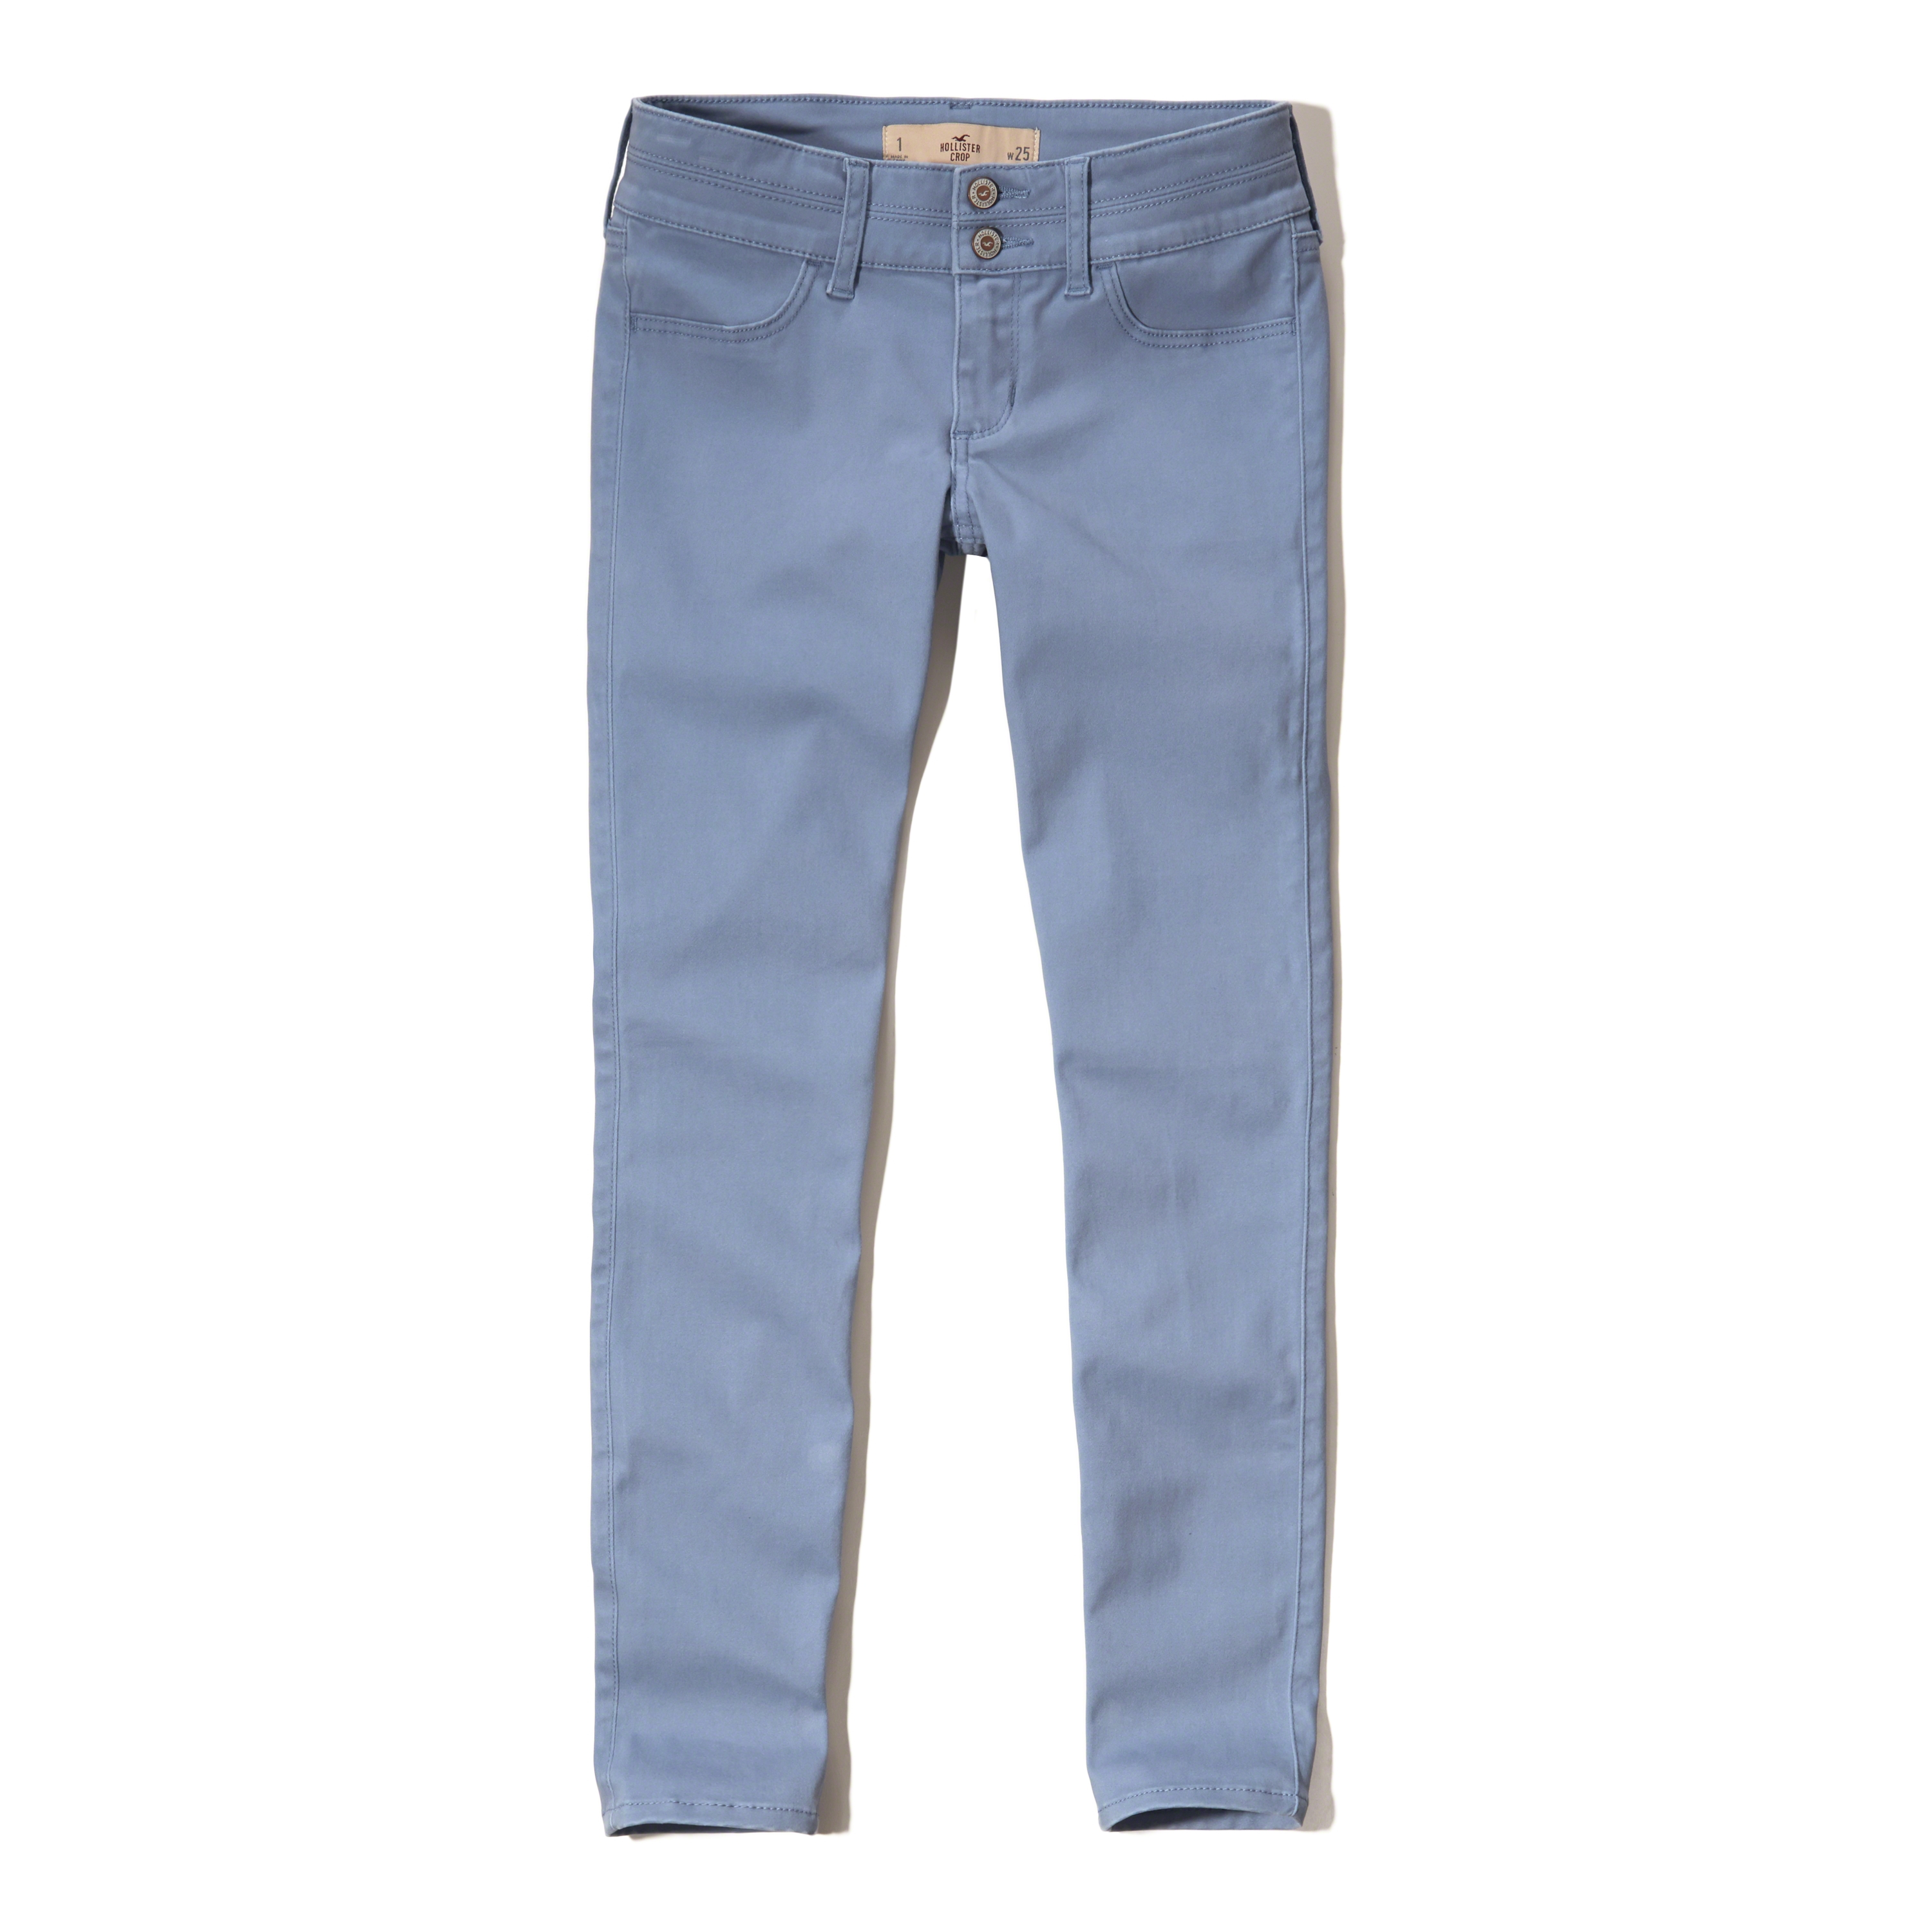 hollister pants for girls - photo #18